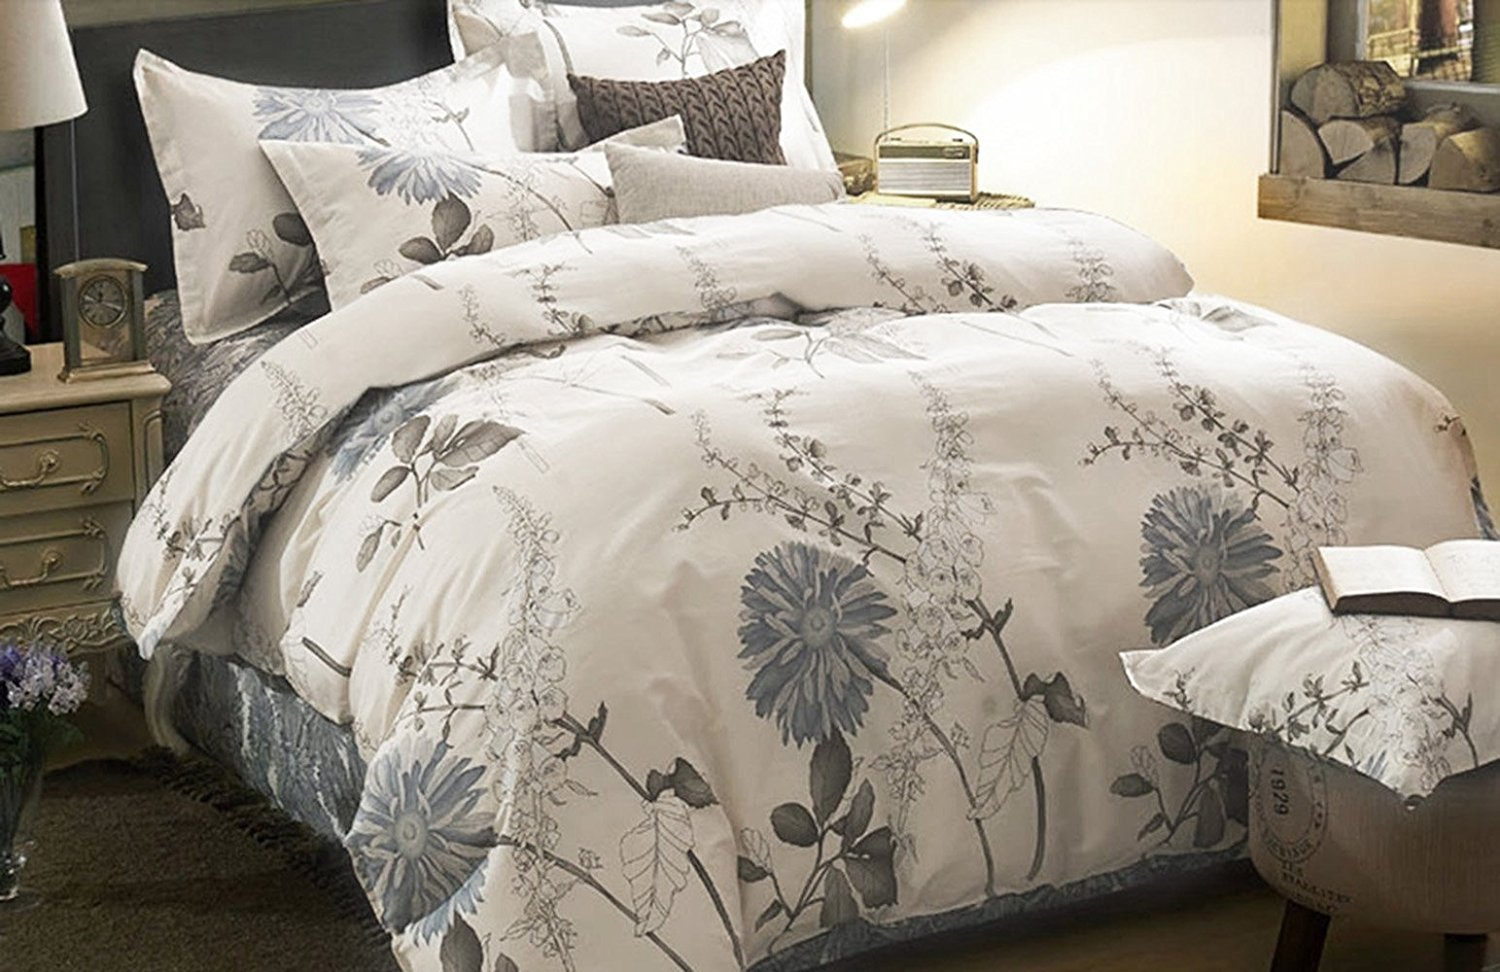 Nice Duvets are the best panion of us in winters Duvets allow us to be warm cosy and warm in chilling nights There are various types of duvets available in